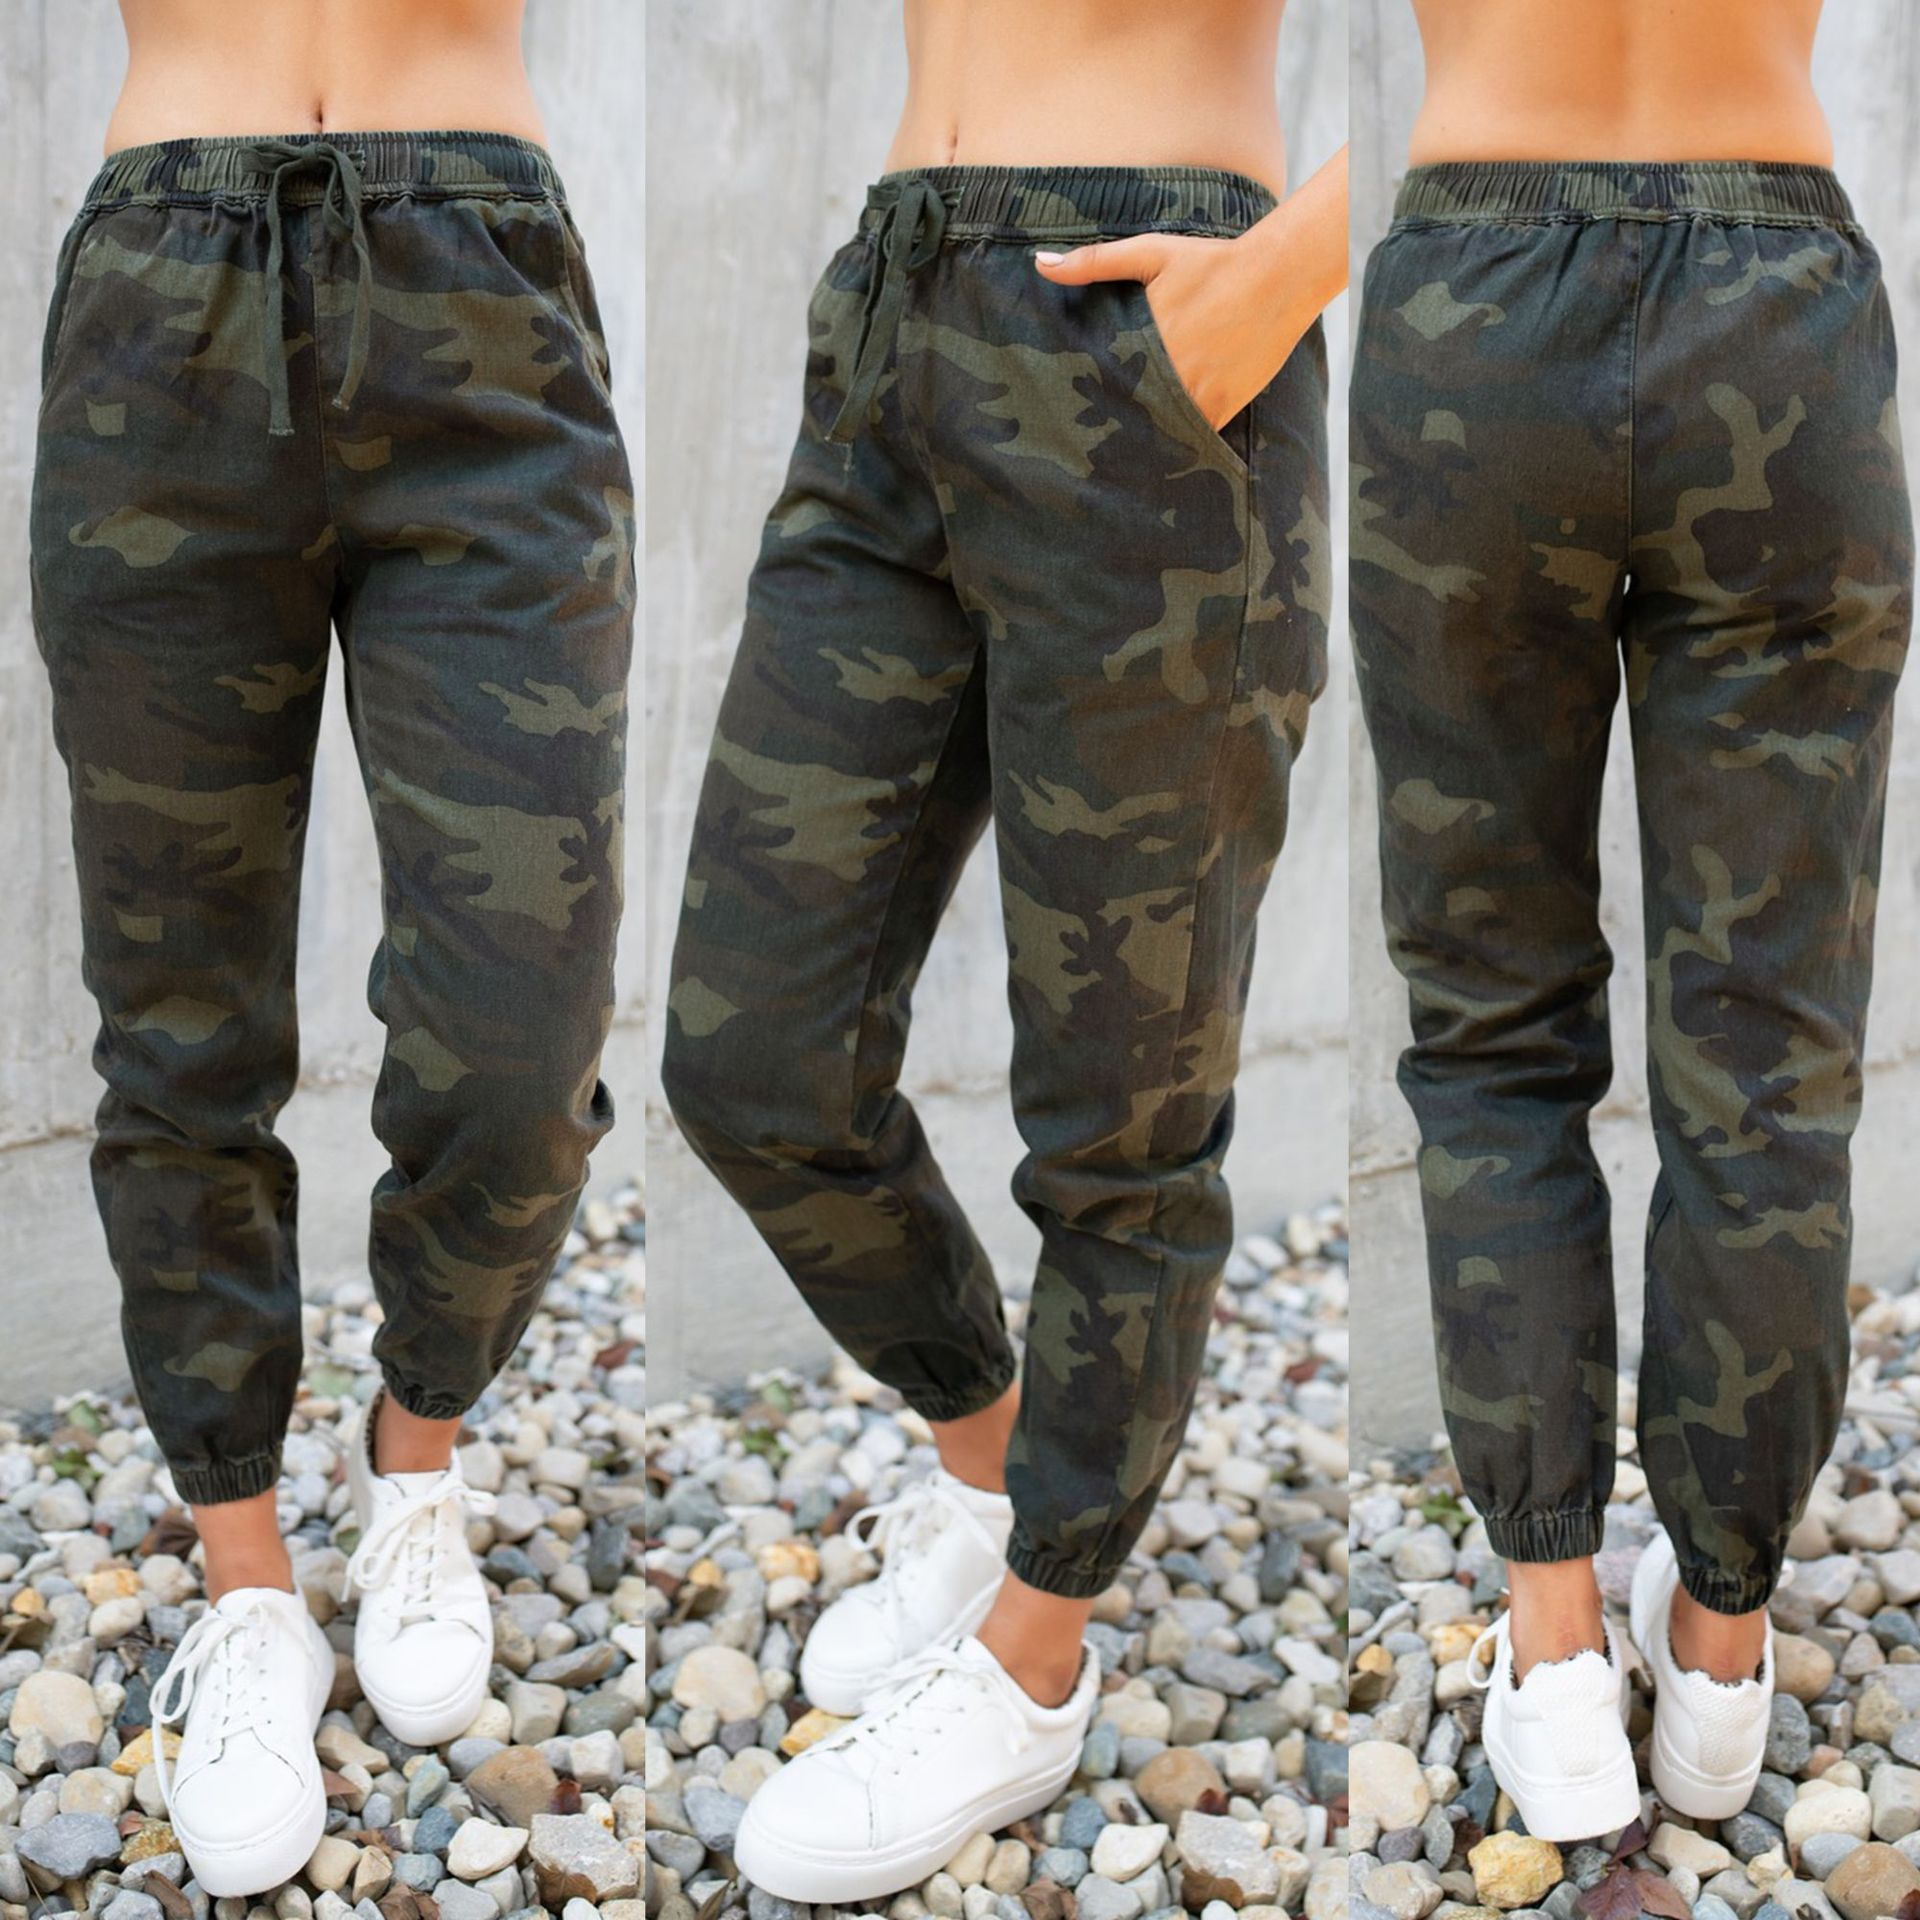 2019 Green Camouflage Print High Elastic Waist Full Length Camo Cargo Pants Women Clothes Sweatpants Casual Loose Trousers